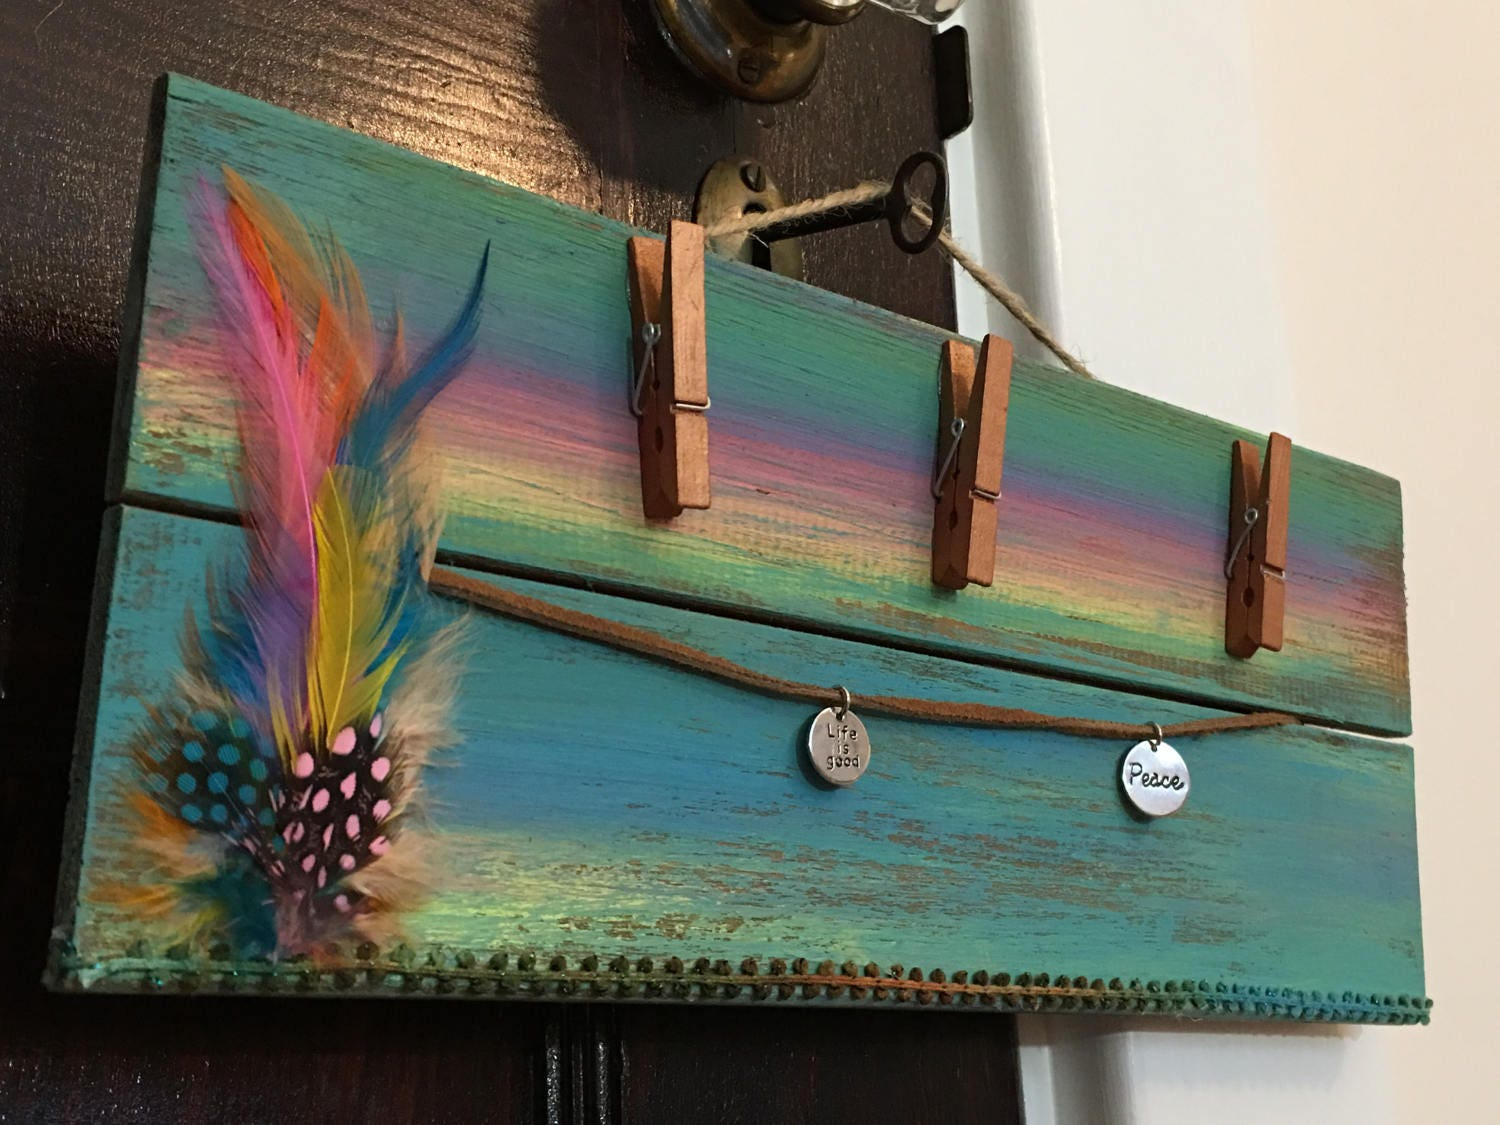 Colorful frame rustic bohemian wall decor peace life is good 2499 amipublicfo Gallery